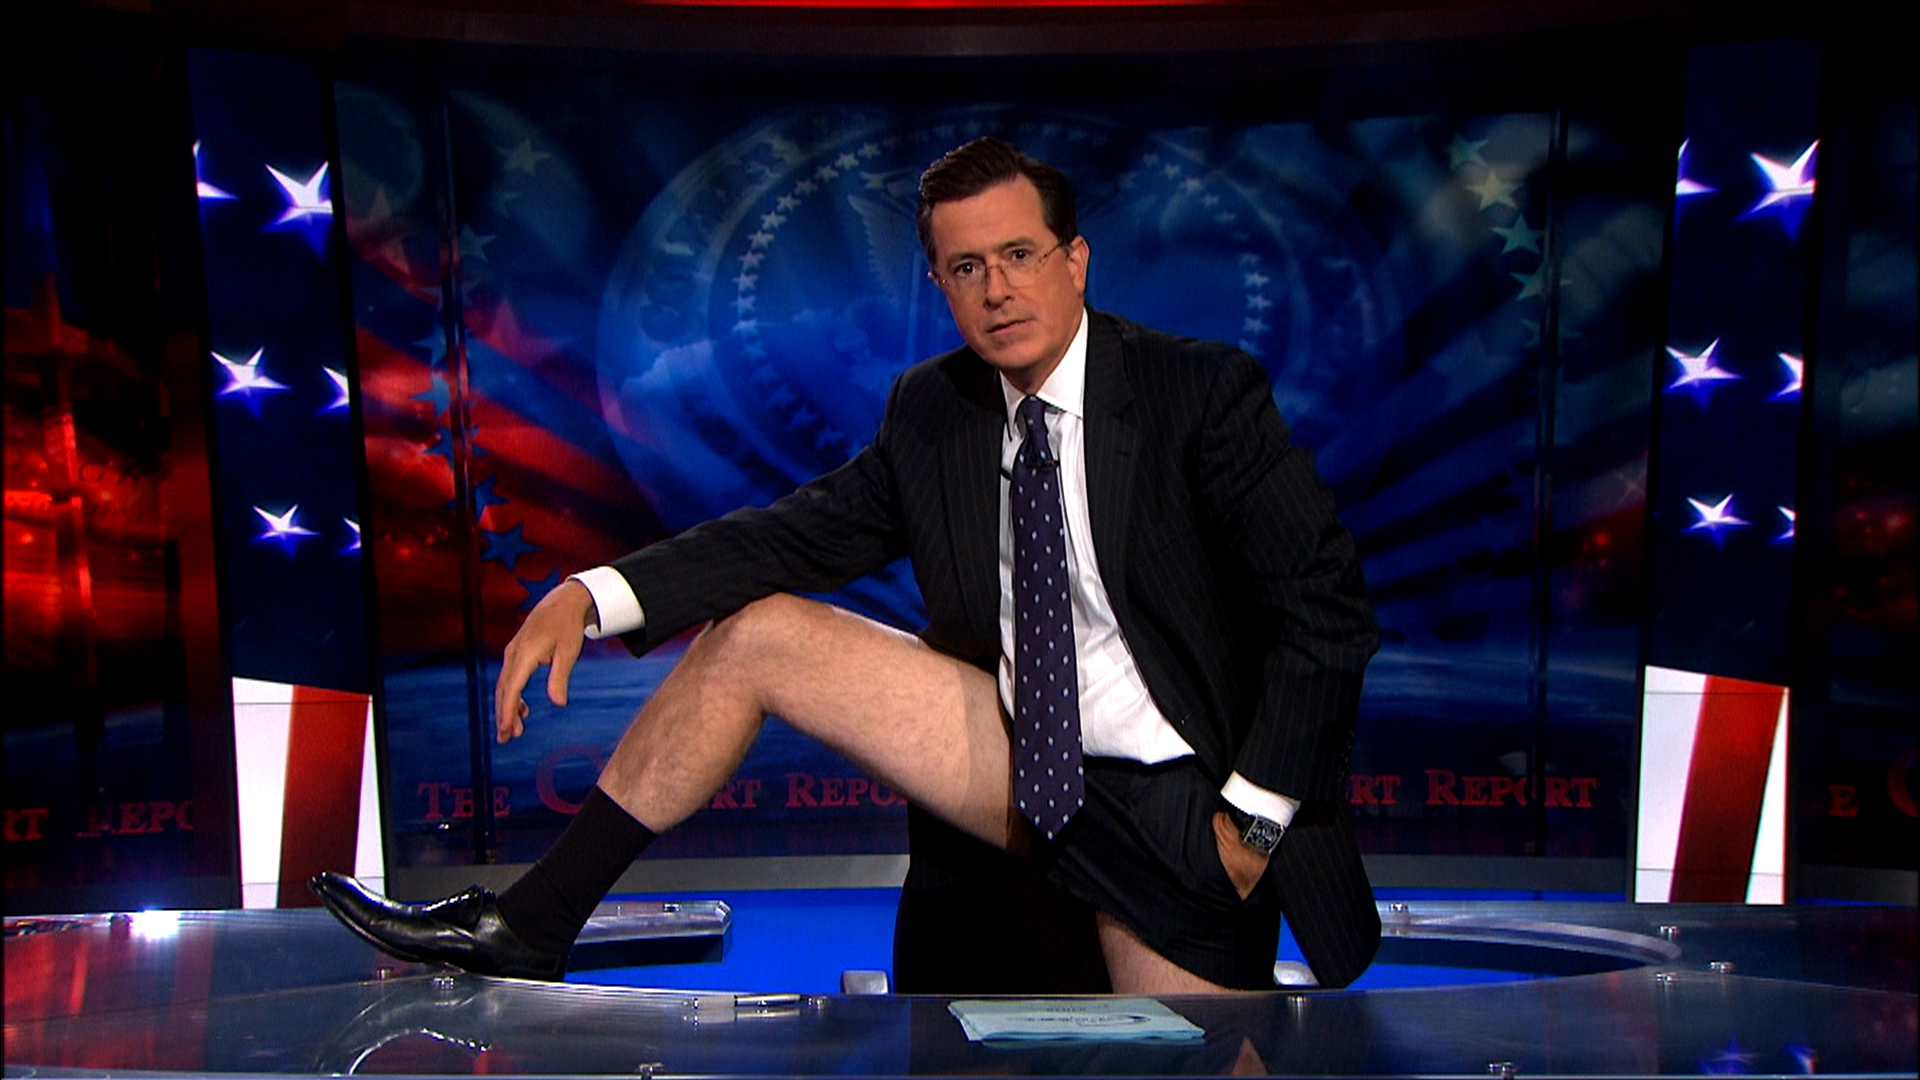 The Colbert Report HD Wallpaper Background Image 1920x1080 1920x1080